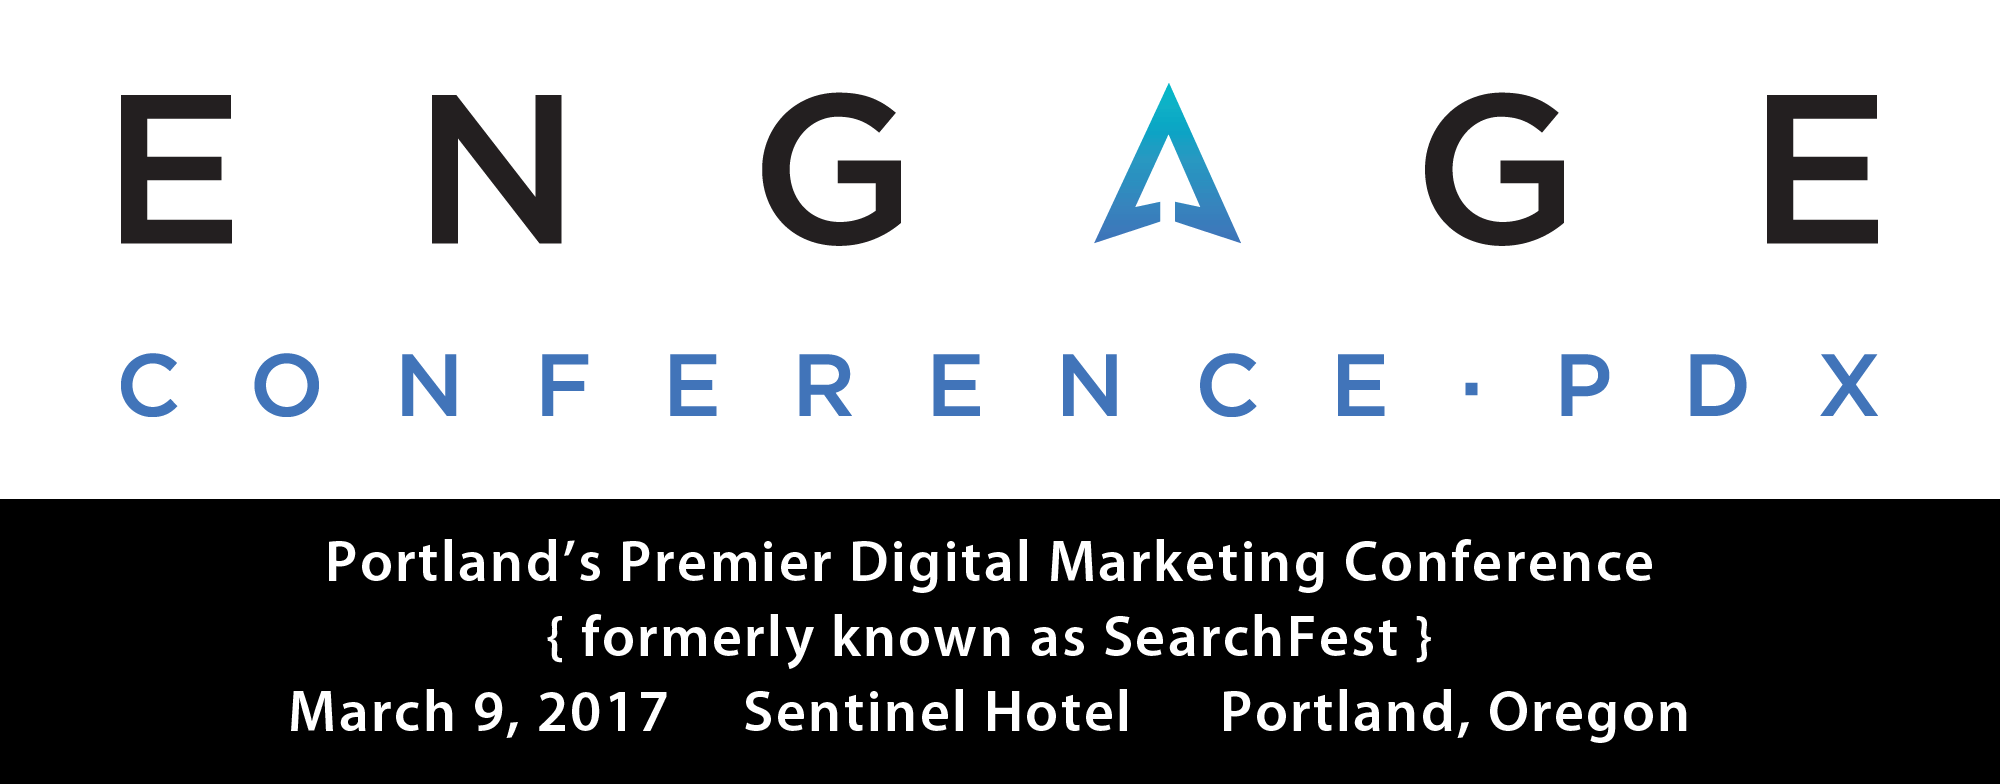 Engage Conference PDX (formerly SearchFest)